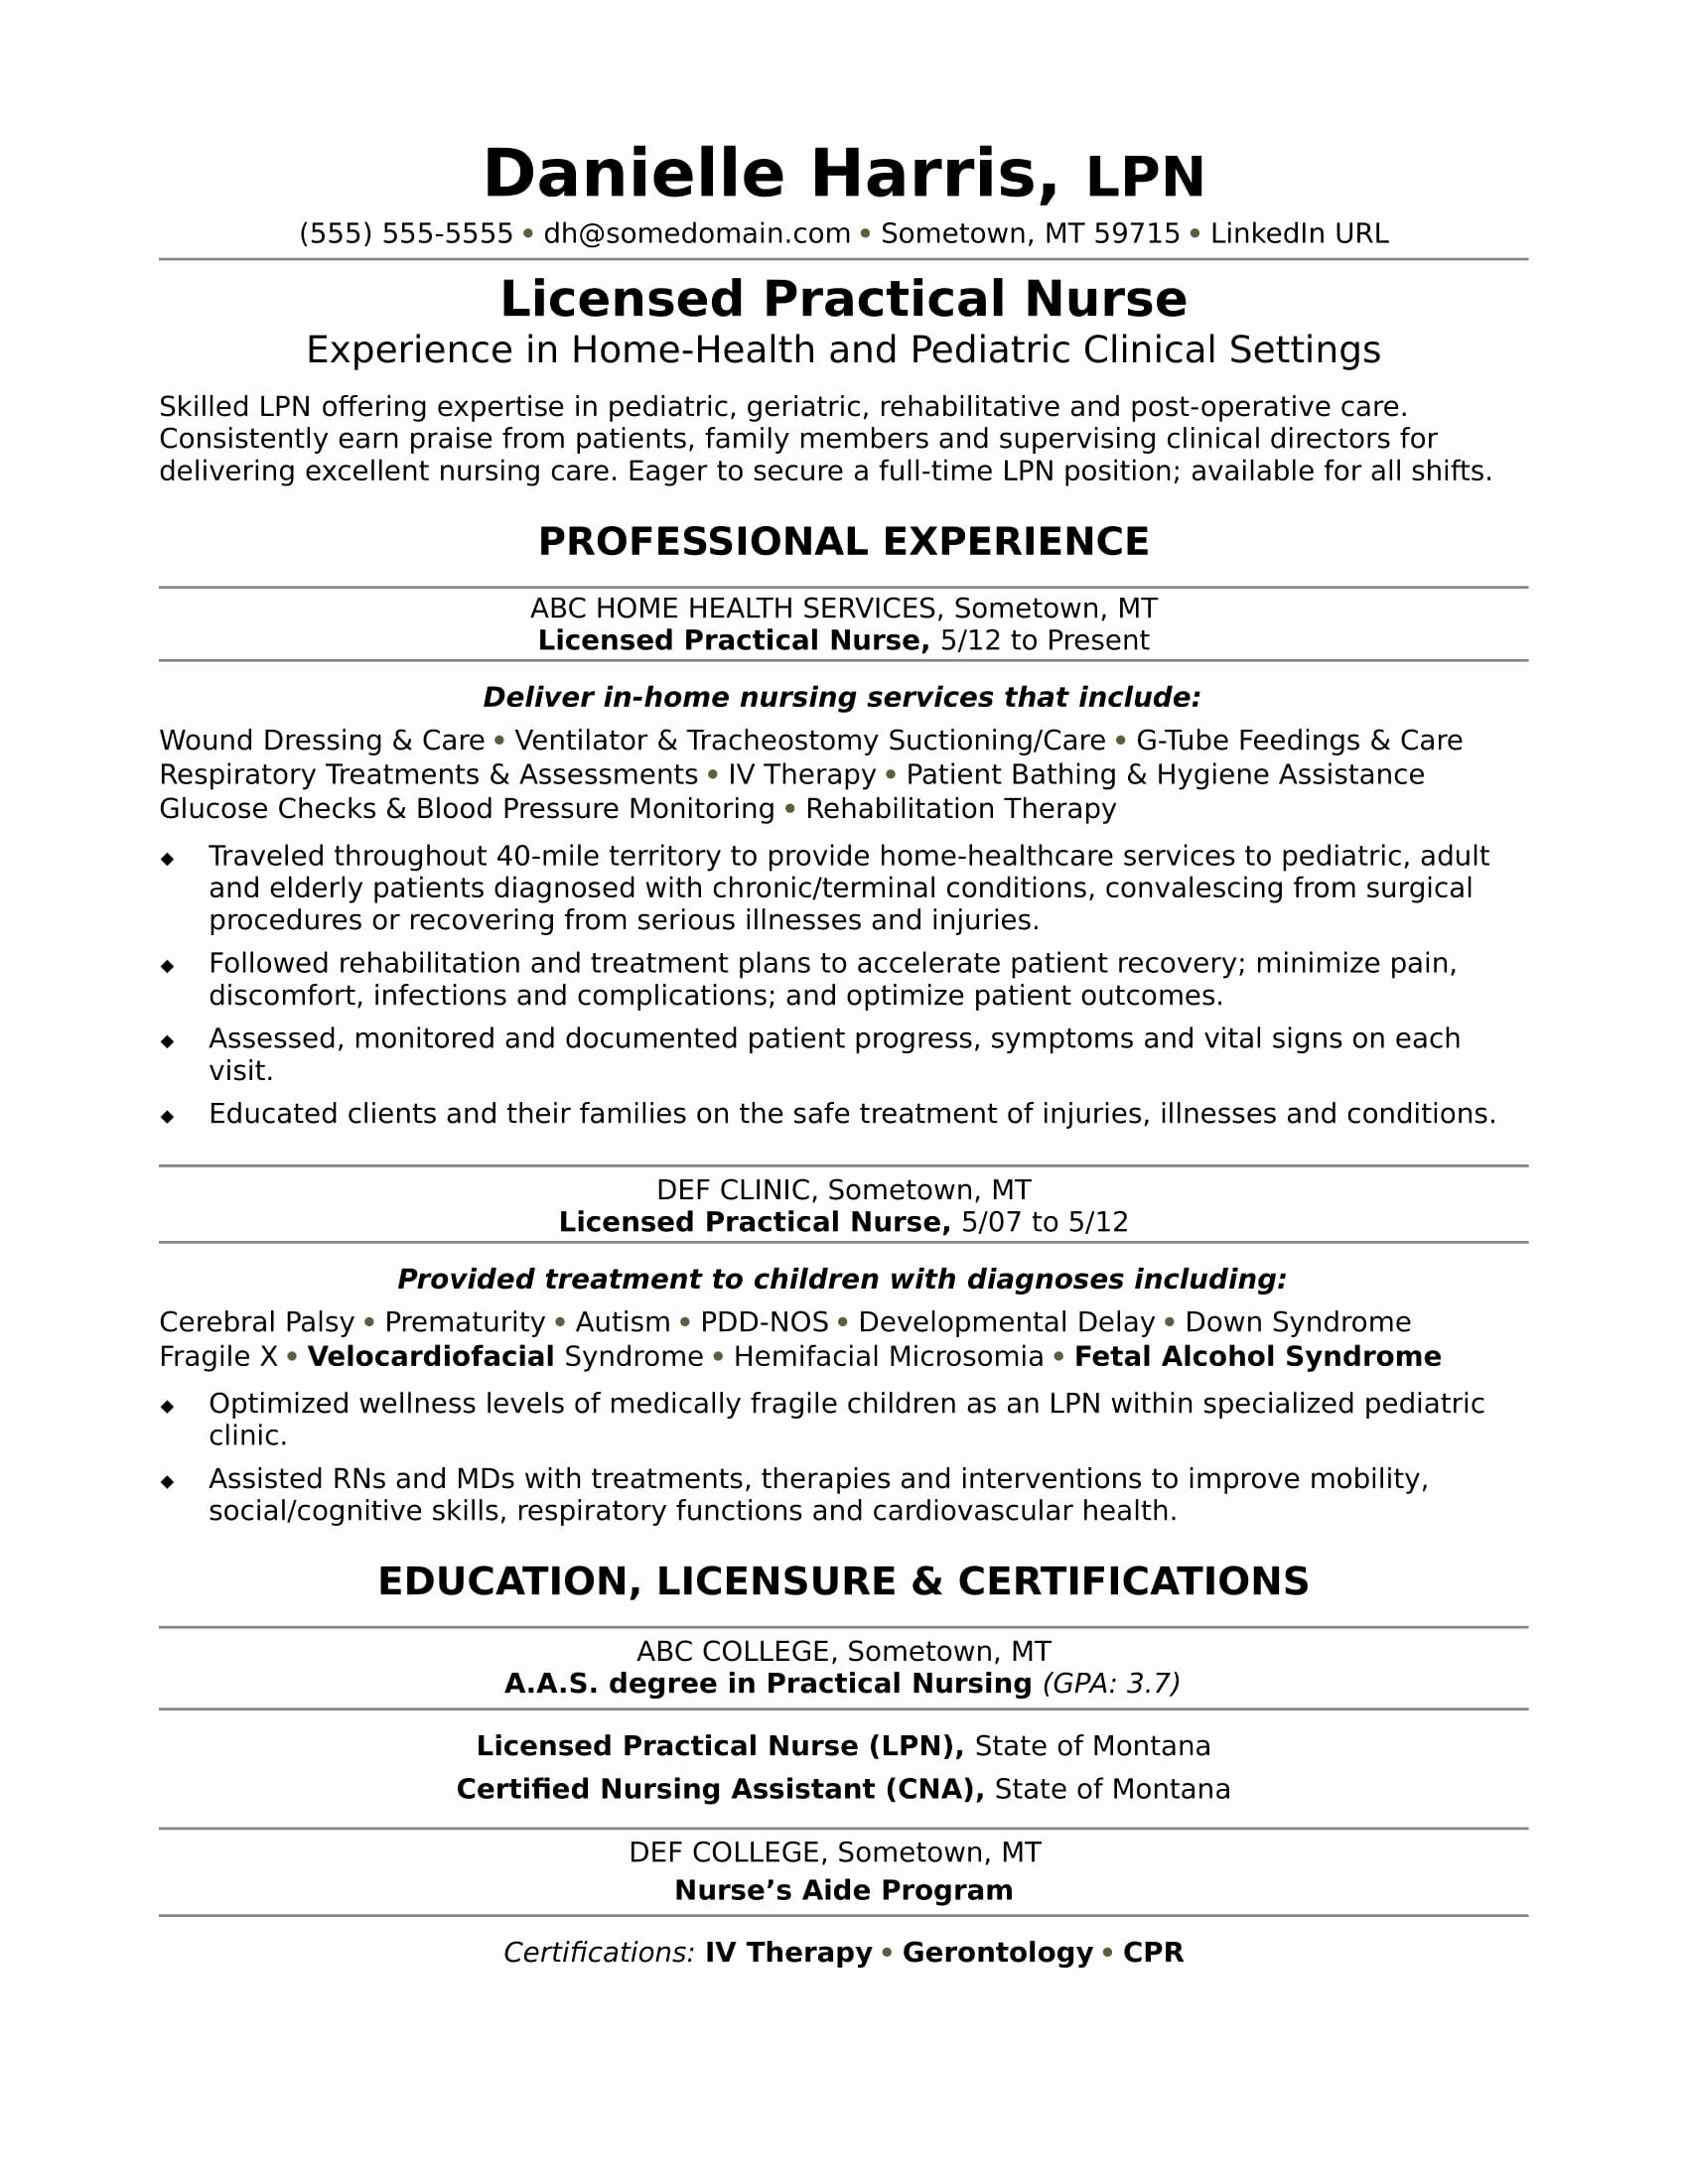 Cna Resume Objective - Cna Resume Skills Awesome Resume for Nurse Luxury New Nurse Resume